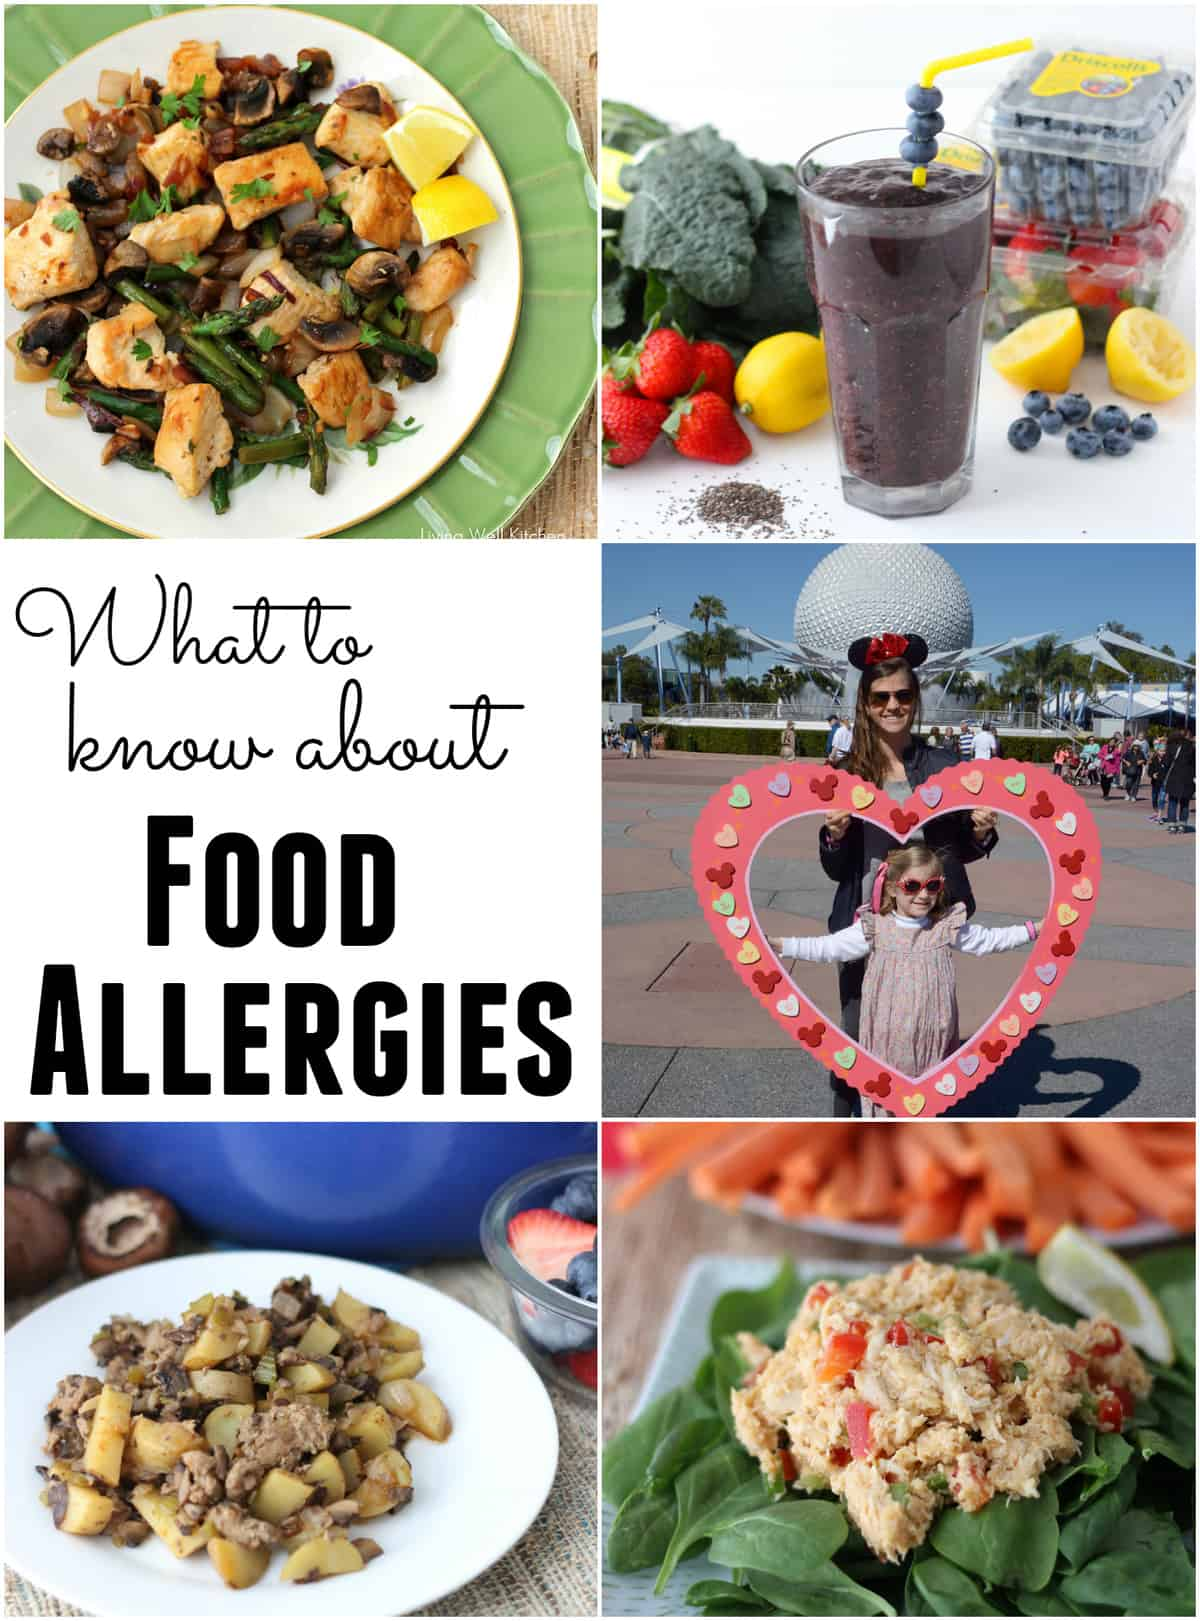 What to know about food allergies from @memeinge. Tips plus recipe ideas for how to stay safe with food allergies